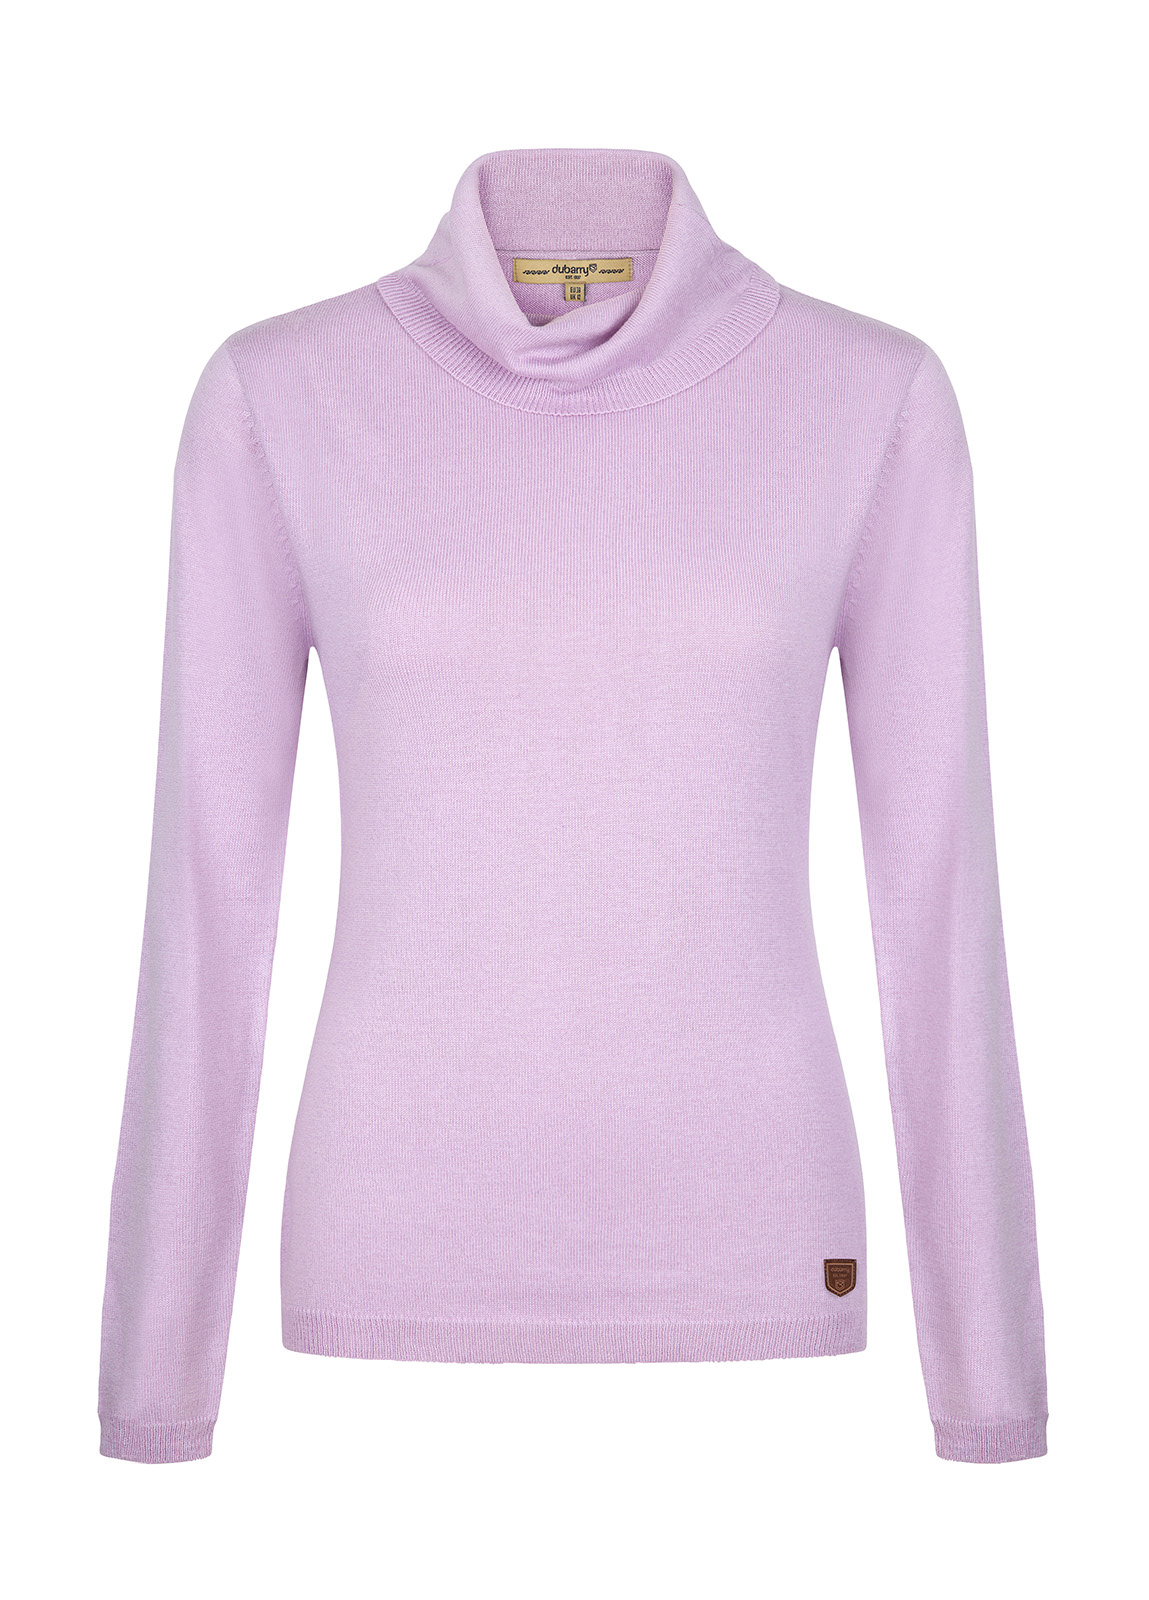 Dubarry_ Redmond Classic Roll Neck Knitted Sweater - Pebble_Image_2